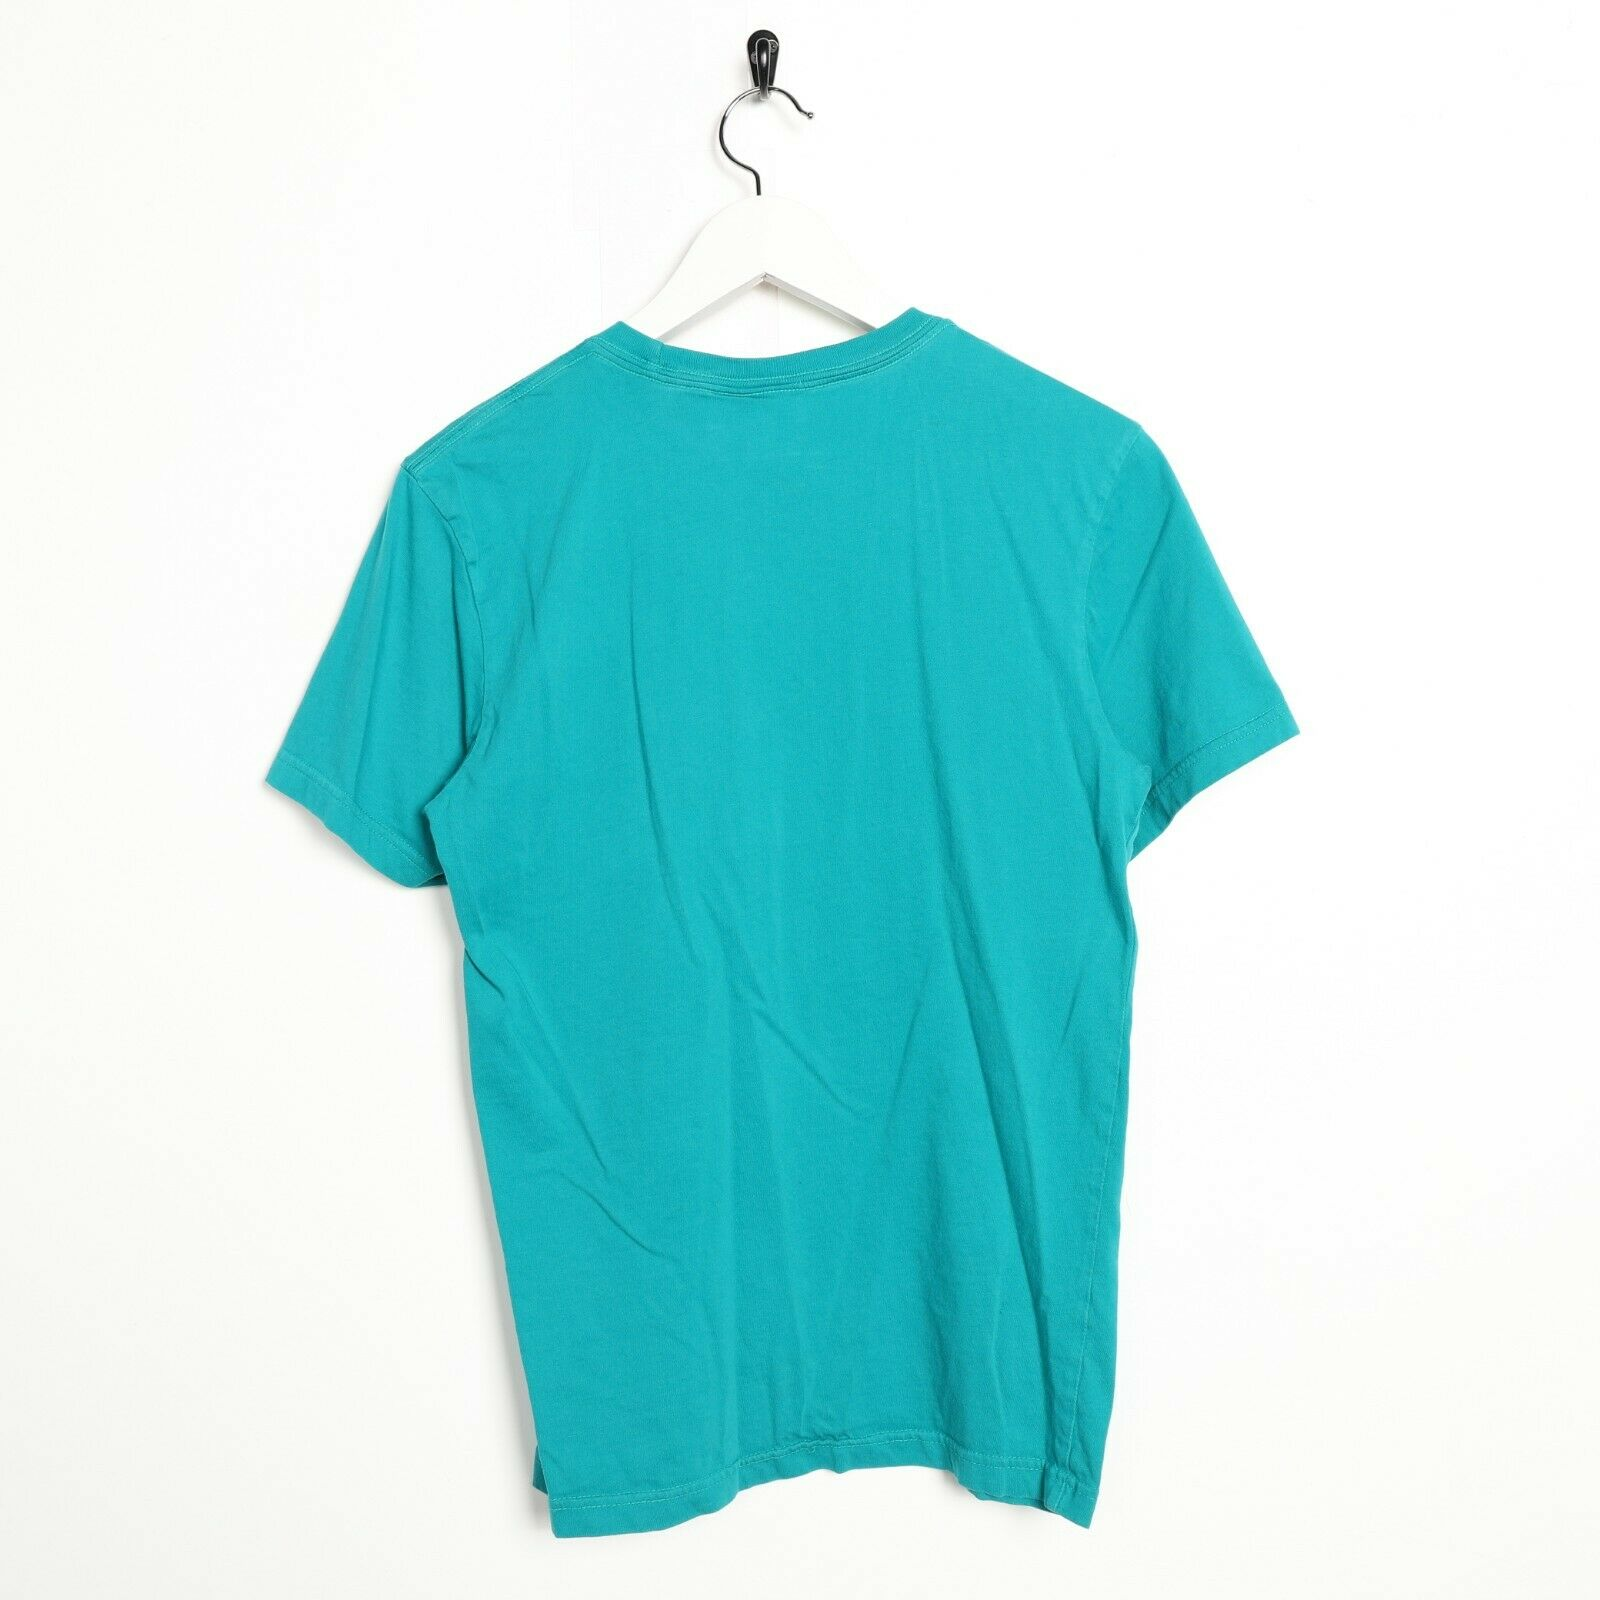 Vintage ADIDAS ORIGINALS Big Trefoil Logo T Shirt Tee Turquoise | Small S